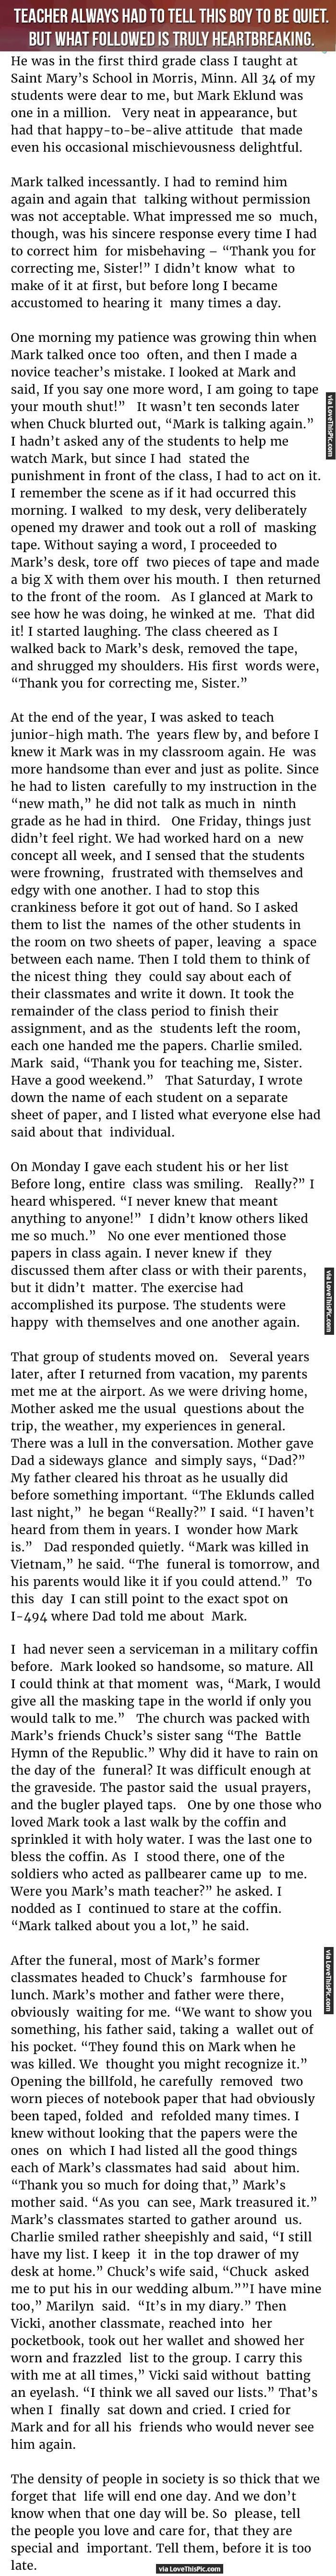 Teacher Always Had To Tell This Boy To Be Quiet But What Followed Is Truly Heartbreaking. people amazing story interesting facts stories heart warming good people teachers